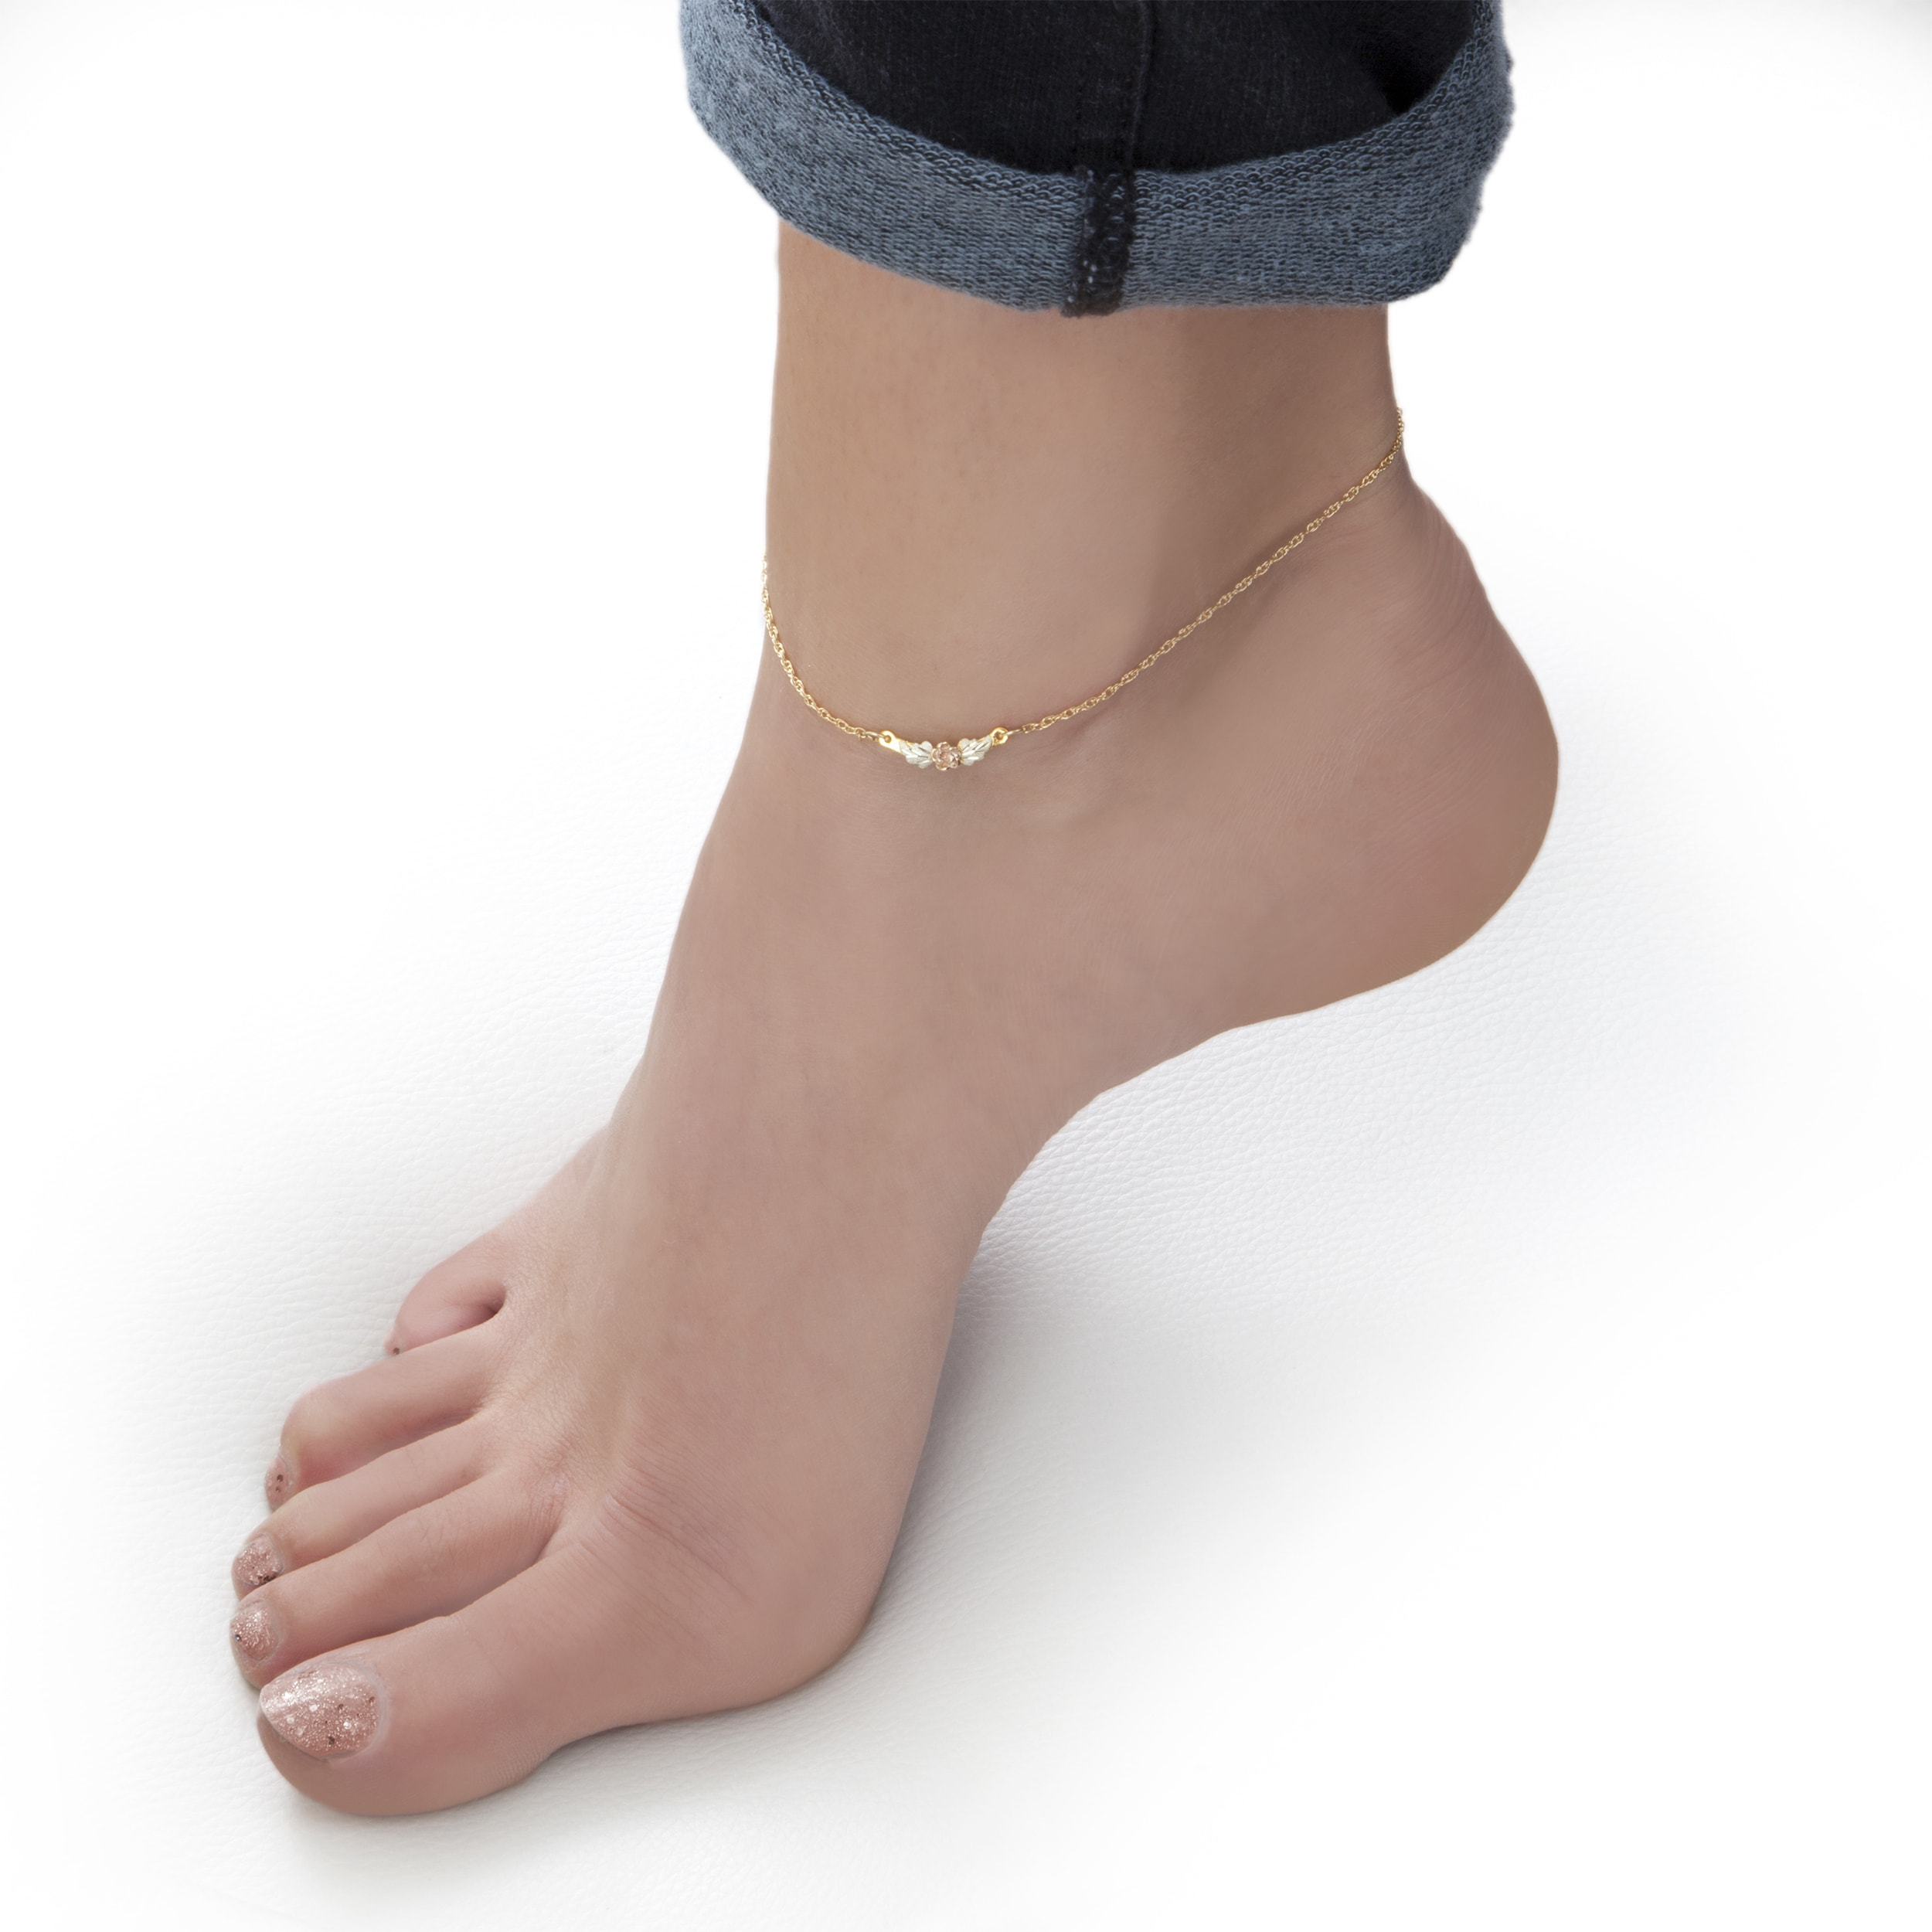 two com gold in ankle overstock palmbeach heart popular watches shipping today tone jewelry tailored product anklet bracelets bracelet puffed free